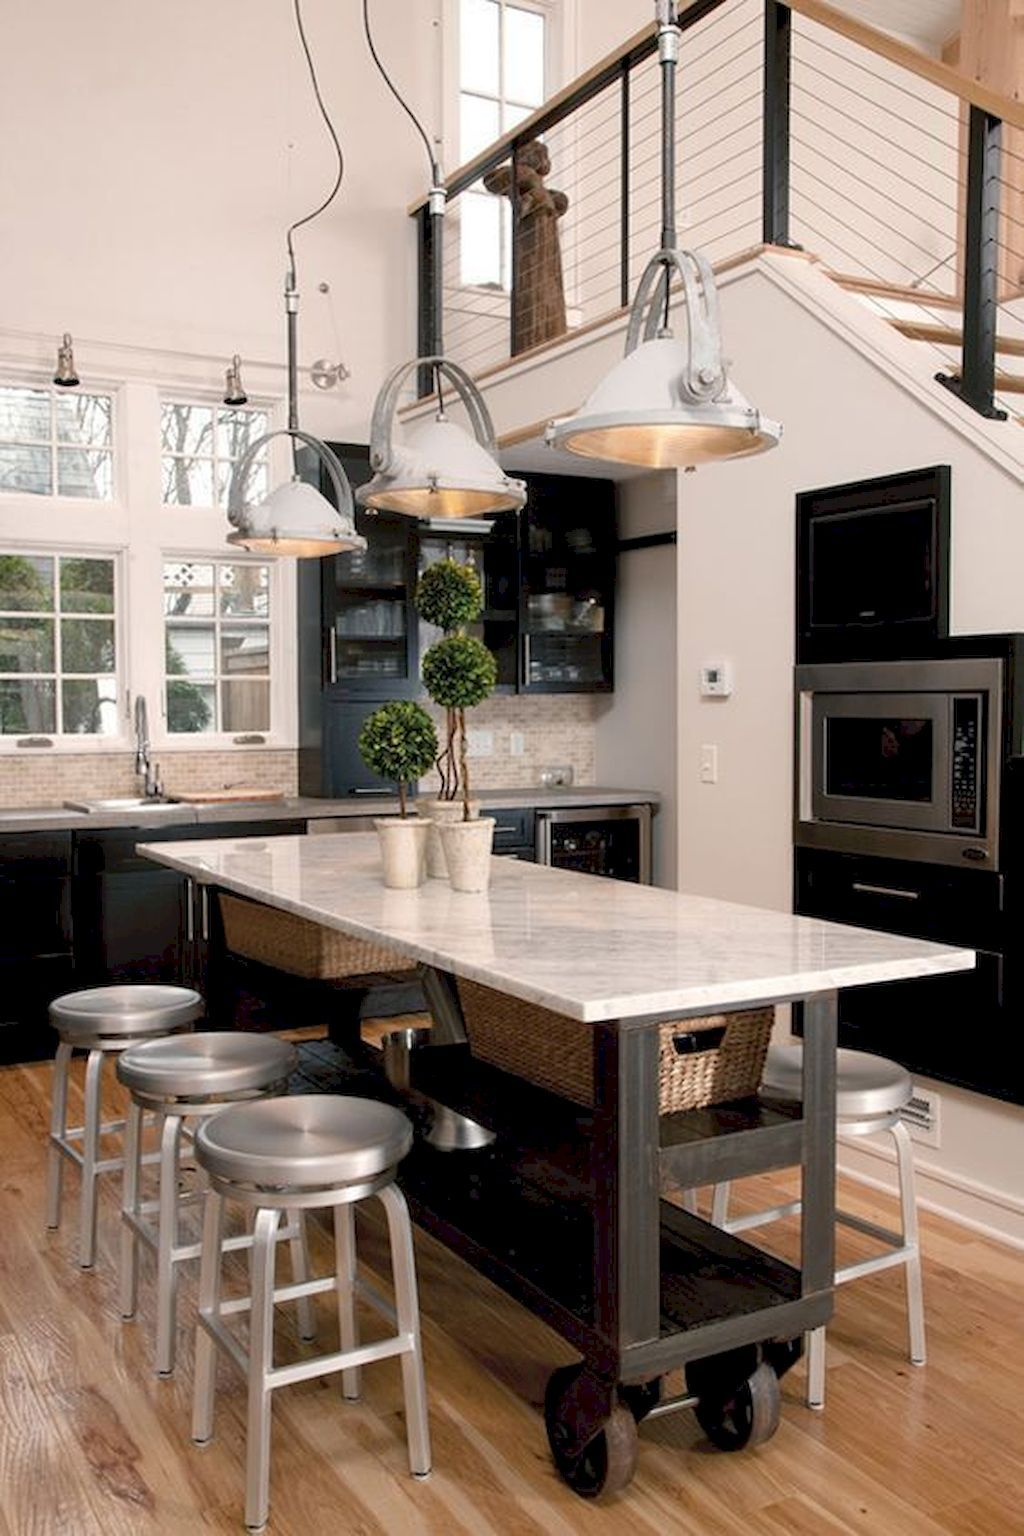 50 Fabulous Kitchen Bar Design Ideas Kitchen Island With Seating Kitchen Island Table Kitchen Remodel